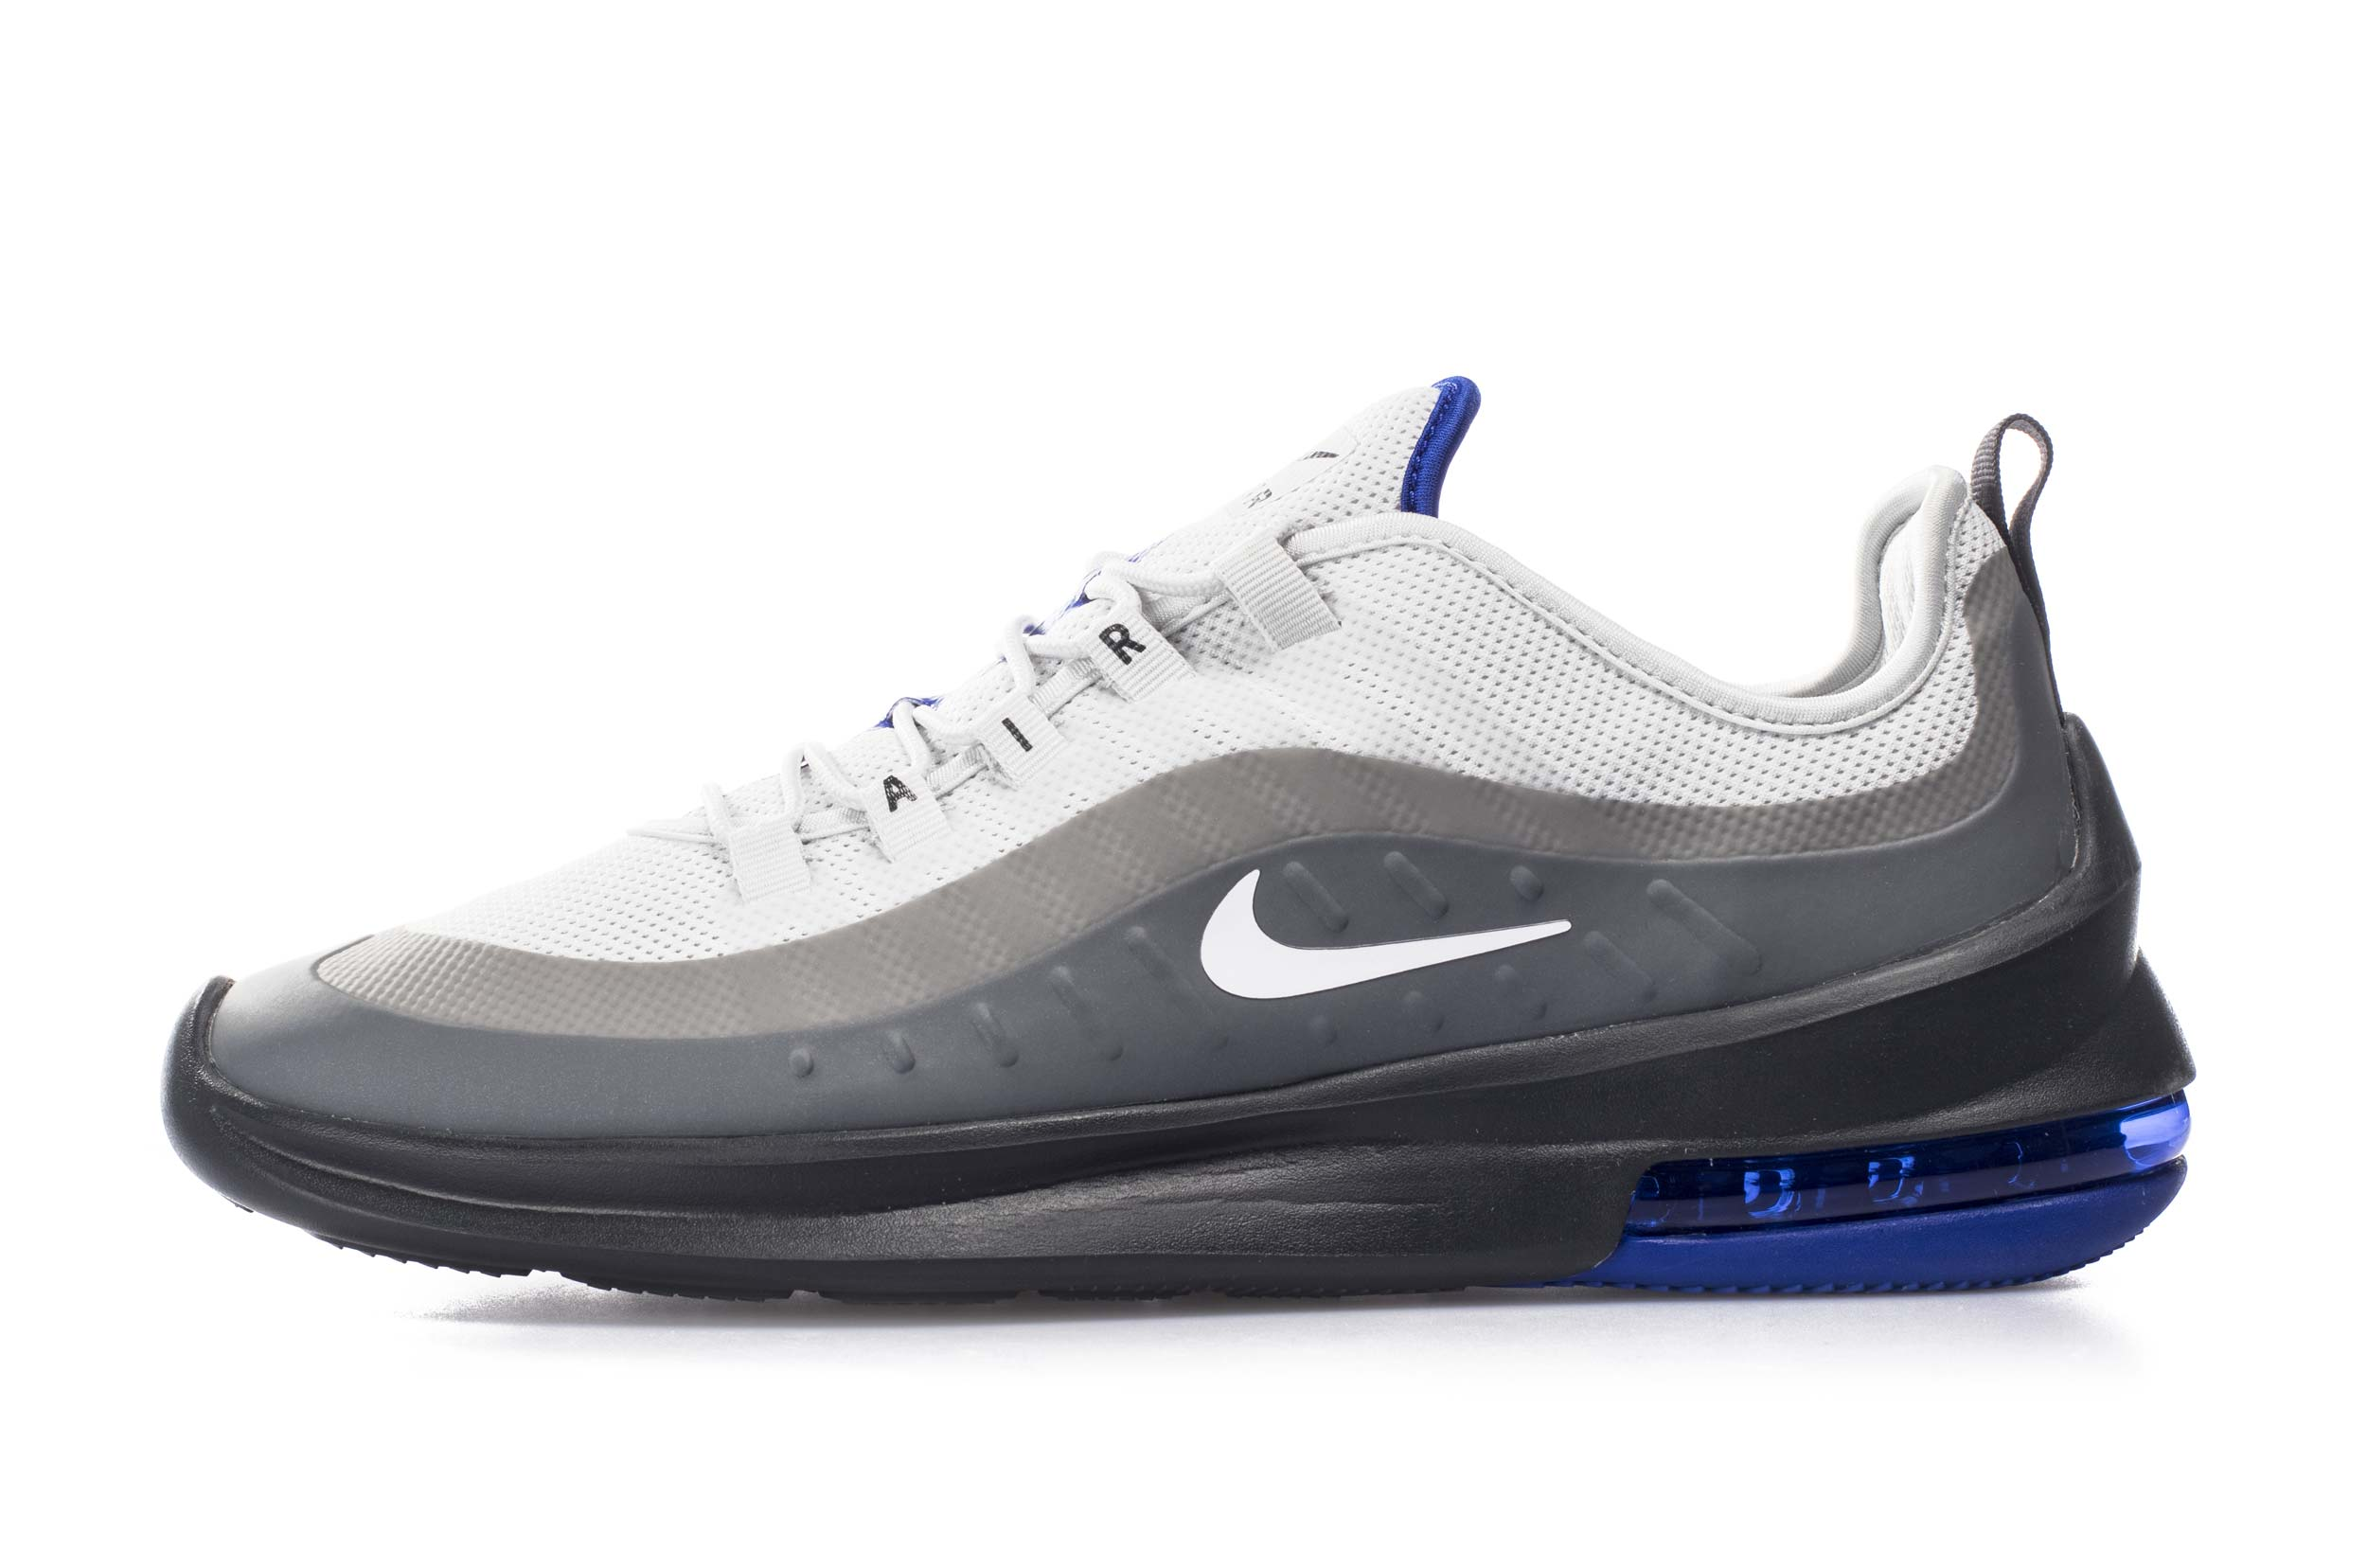 NIKE AIR MAX AXIS AA2146 016 Ανθρακί shoes & style